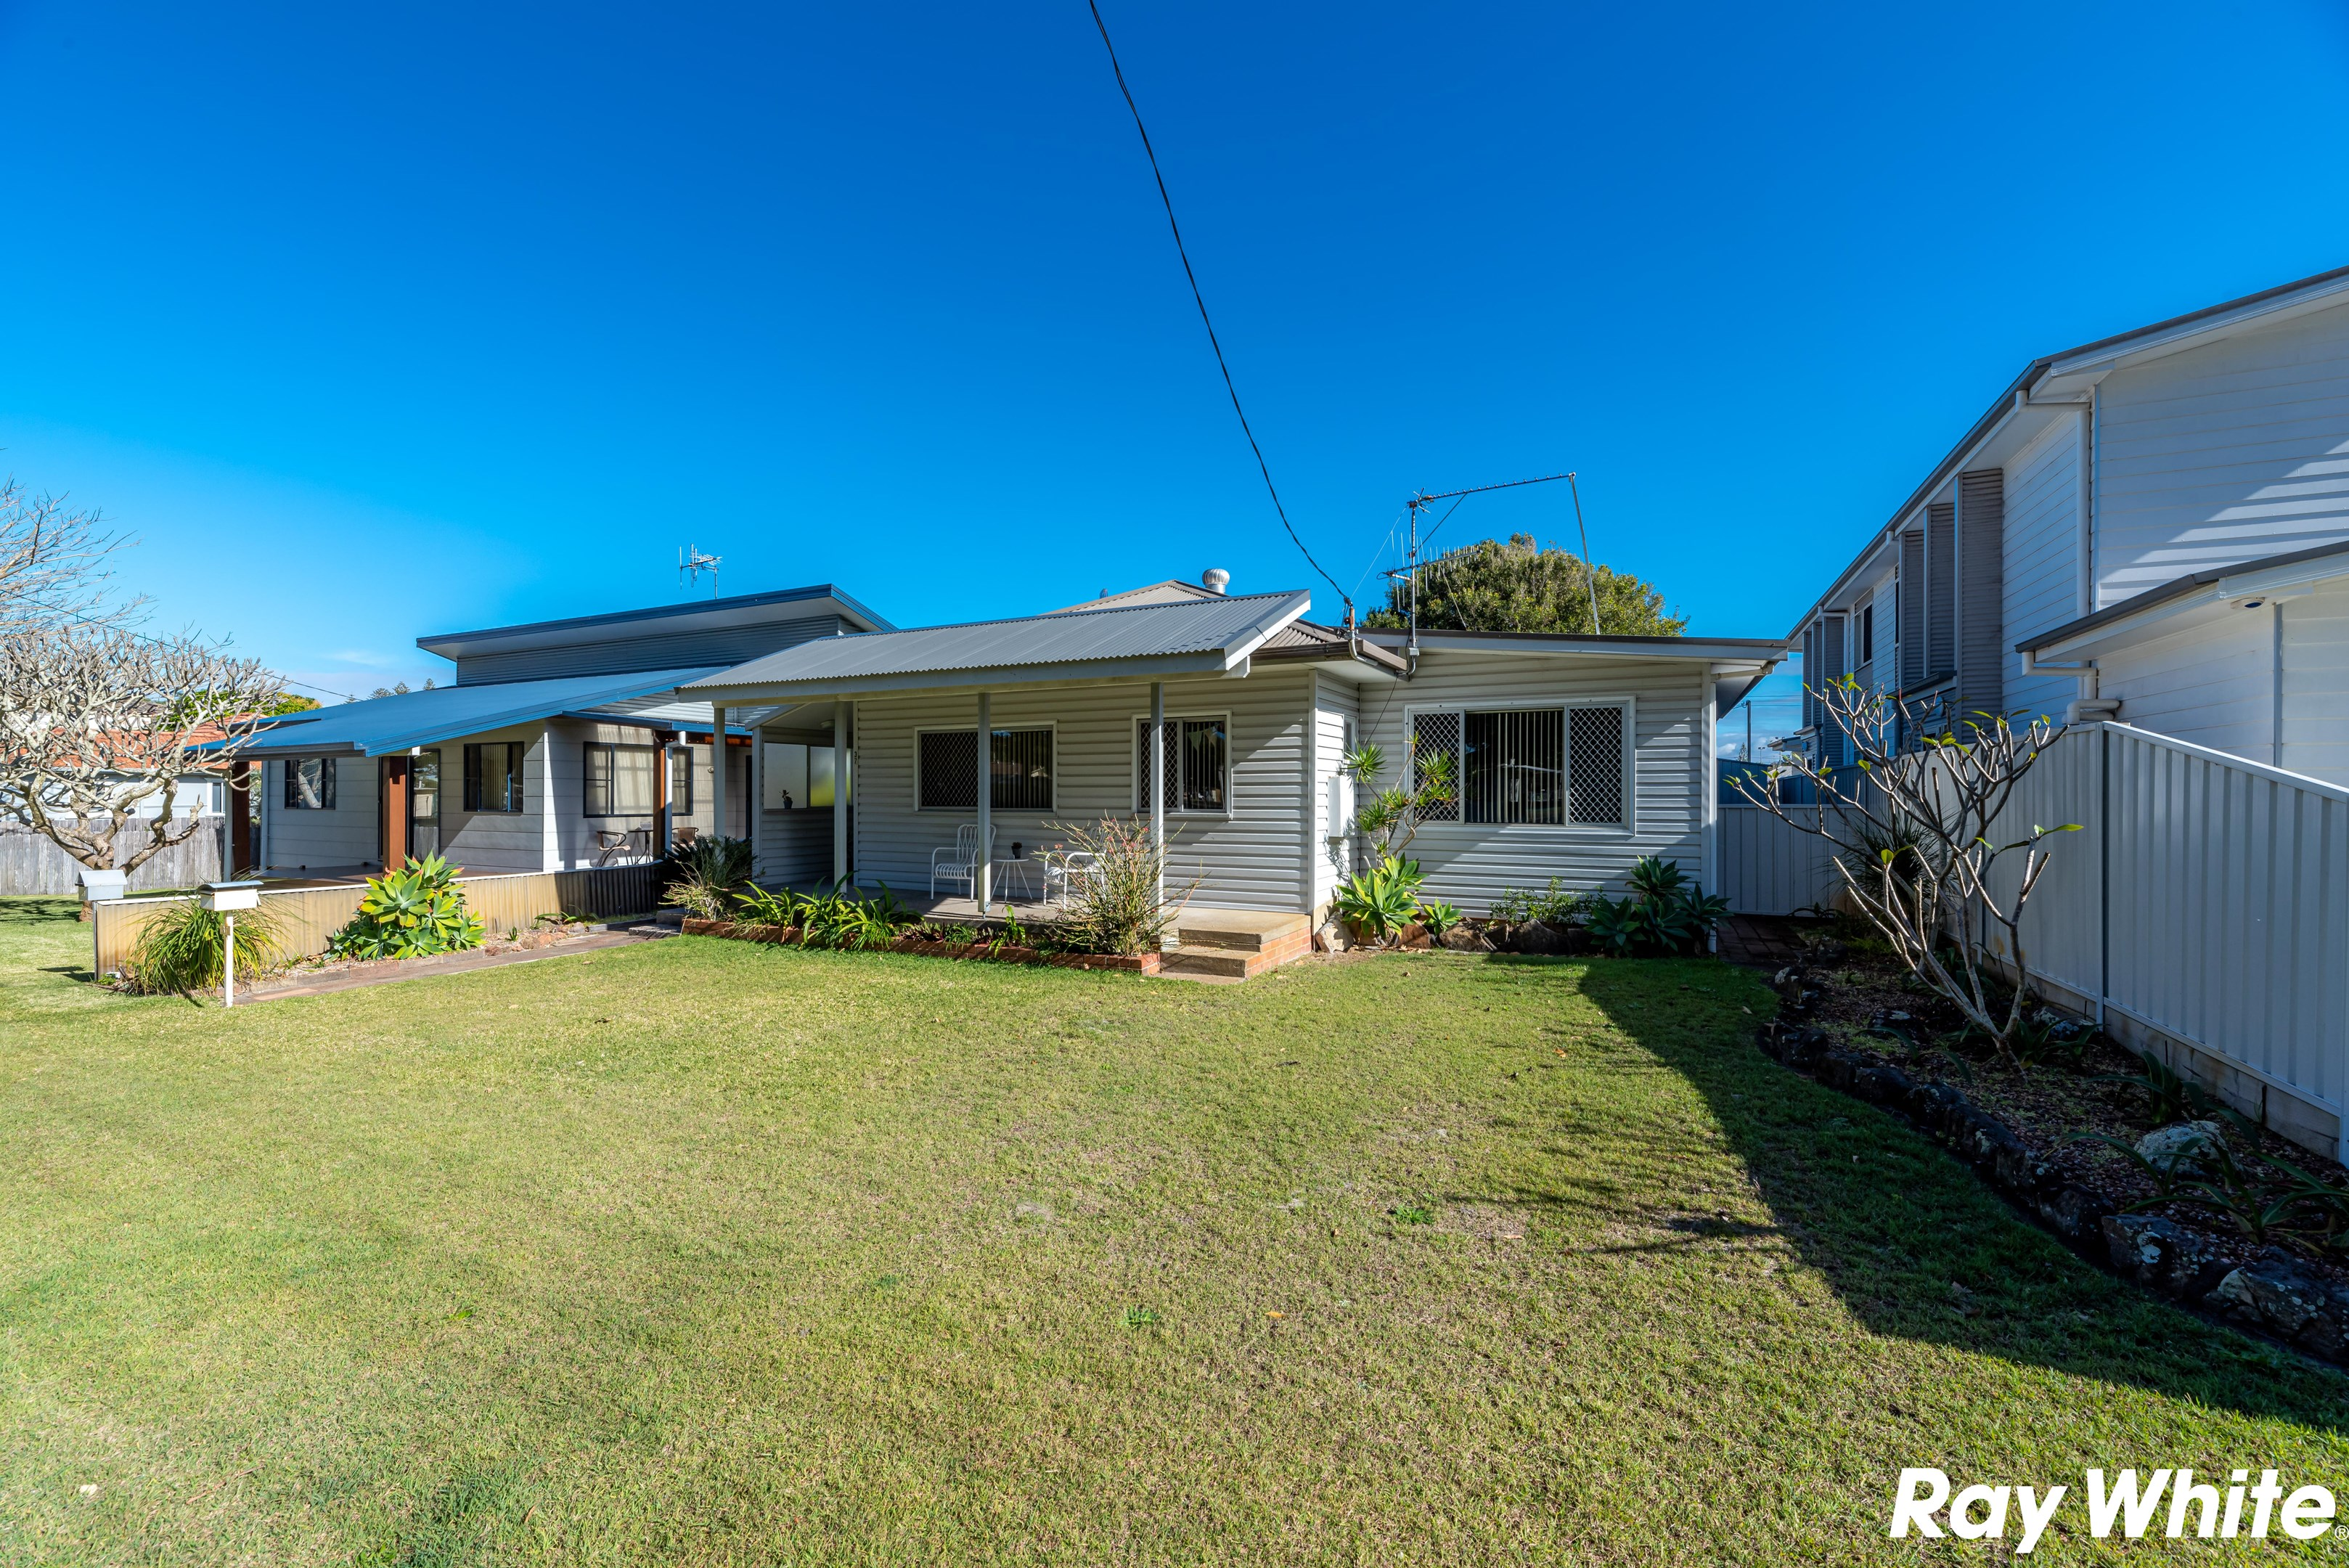 Property Report for 37 Beach Street, Tuncurry NSW 2428